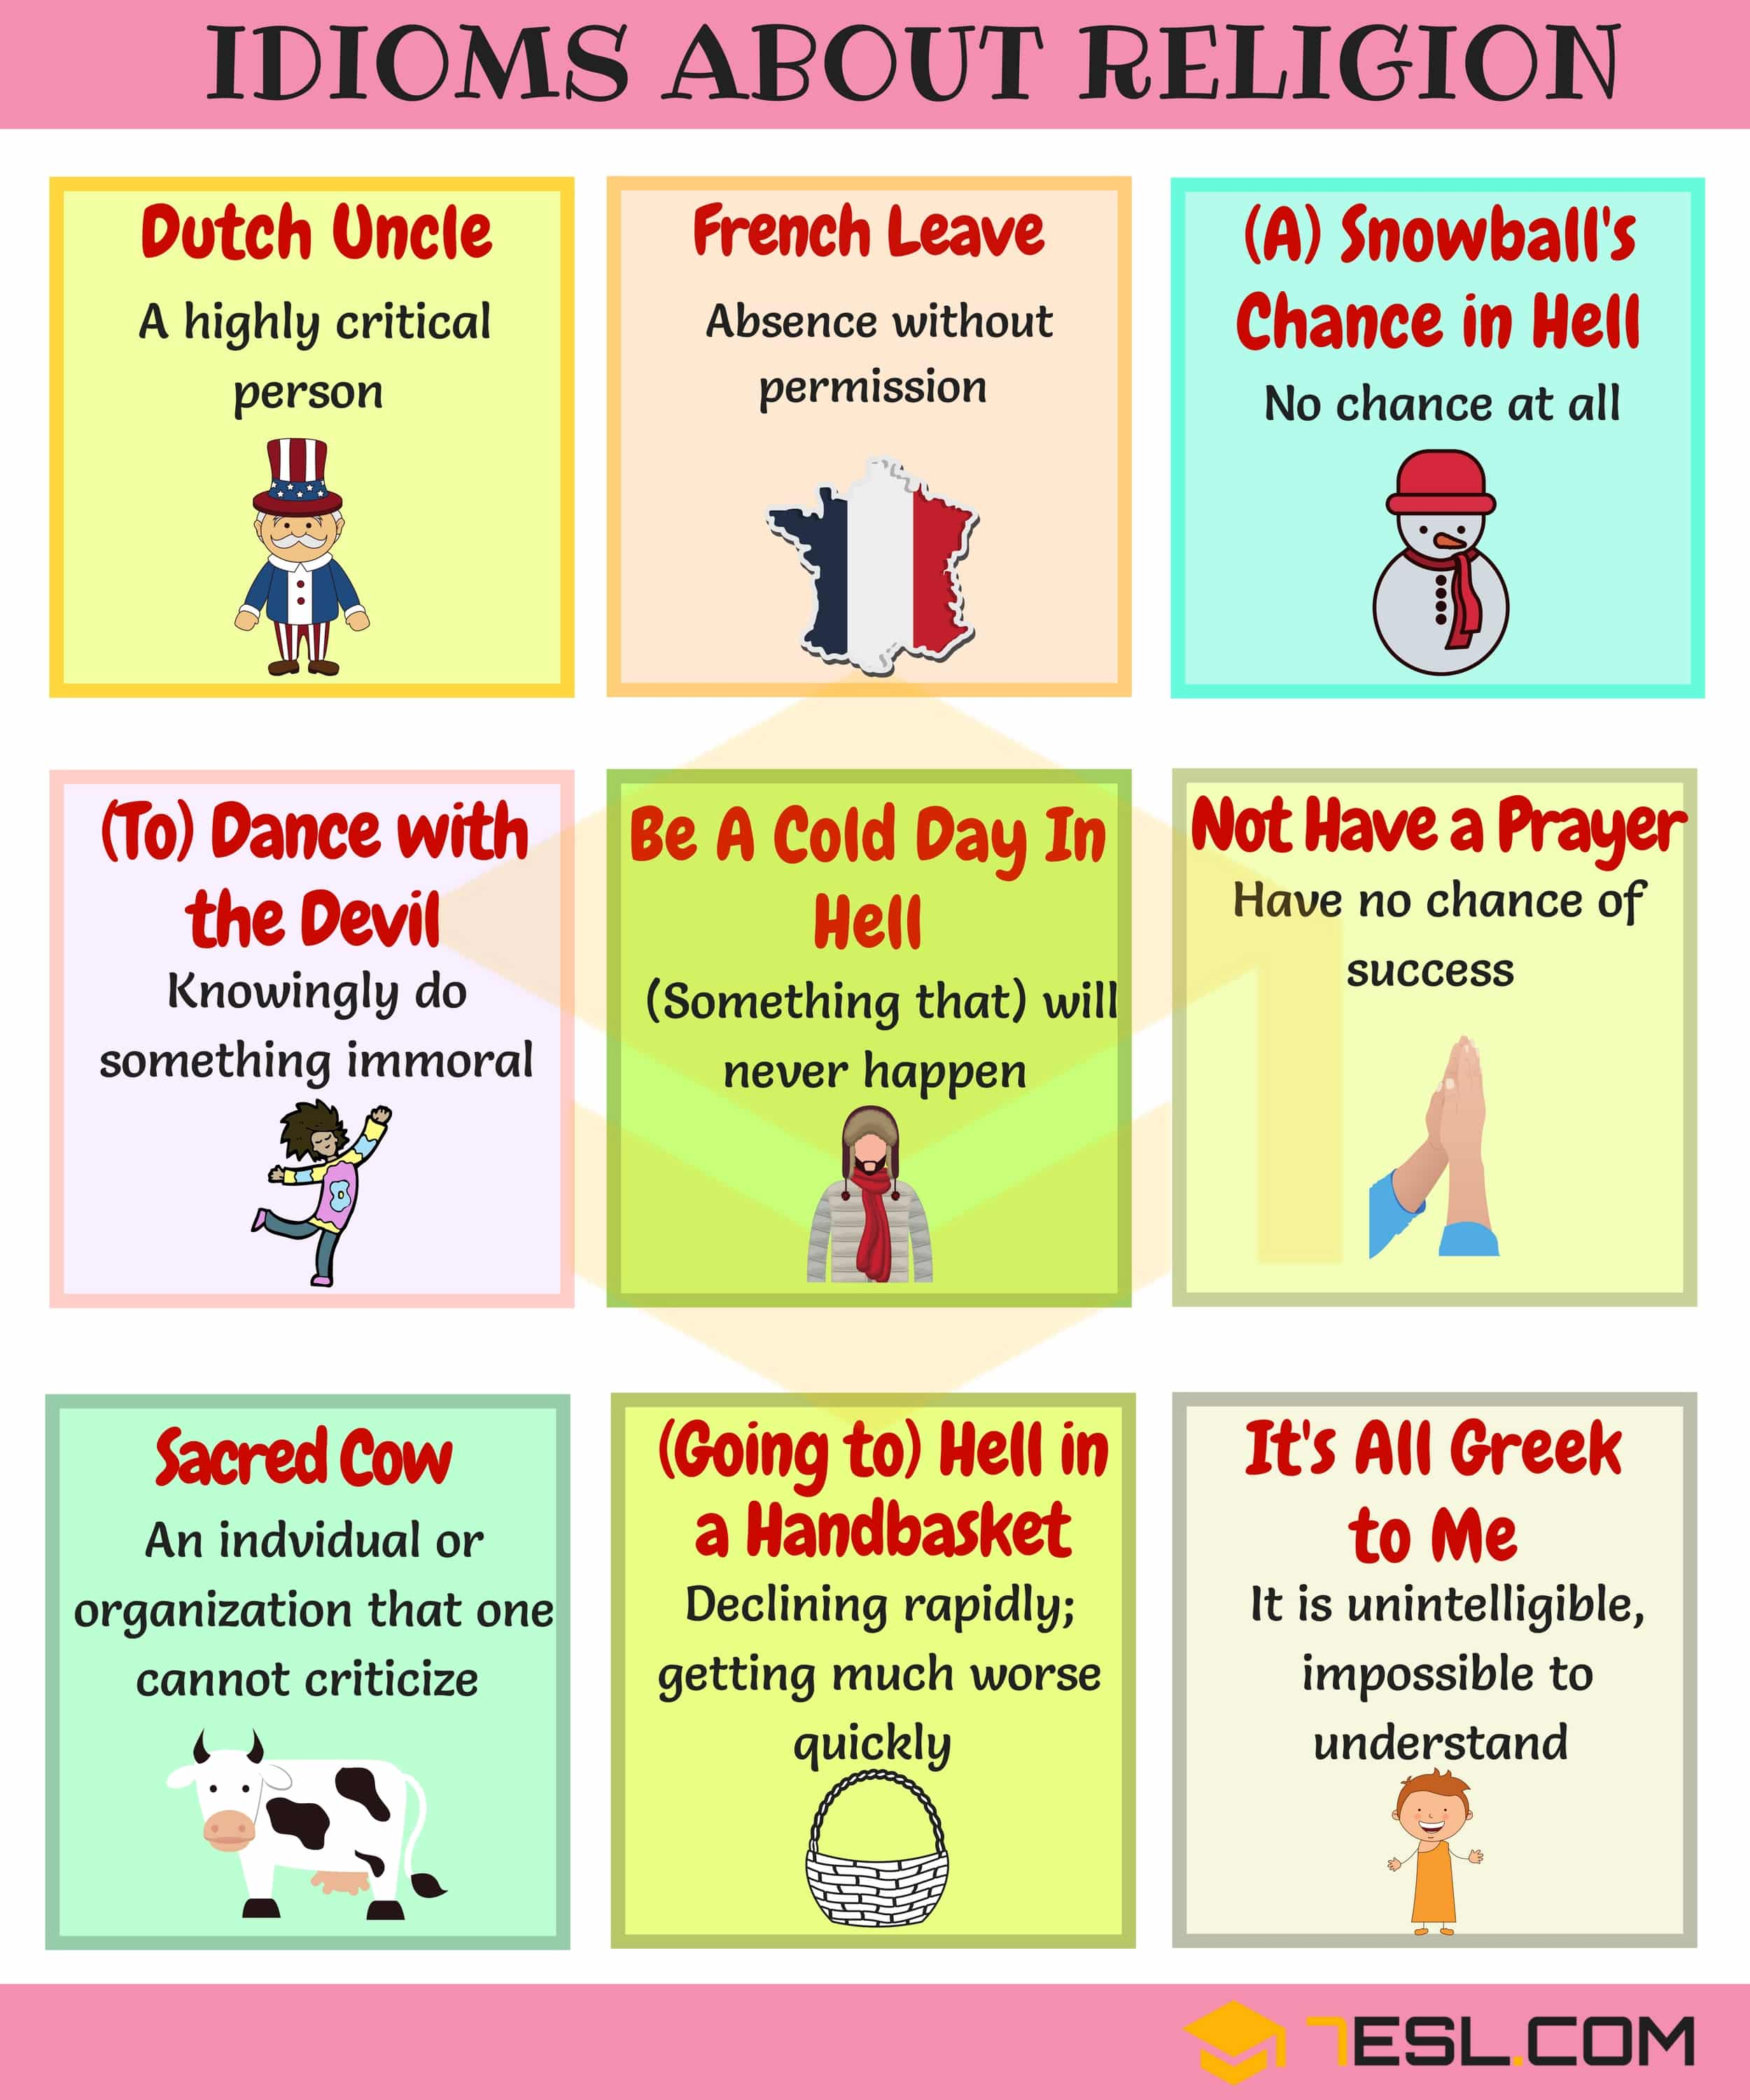 Frequently Used Religion and Ethnicity Idioms in English